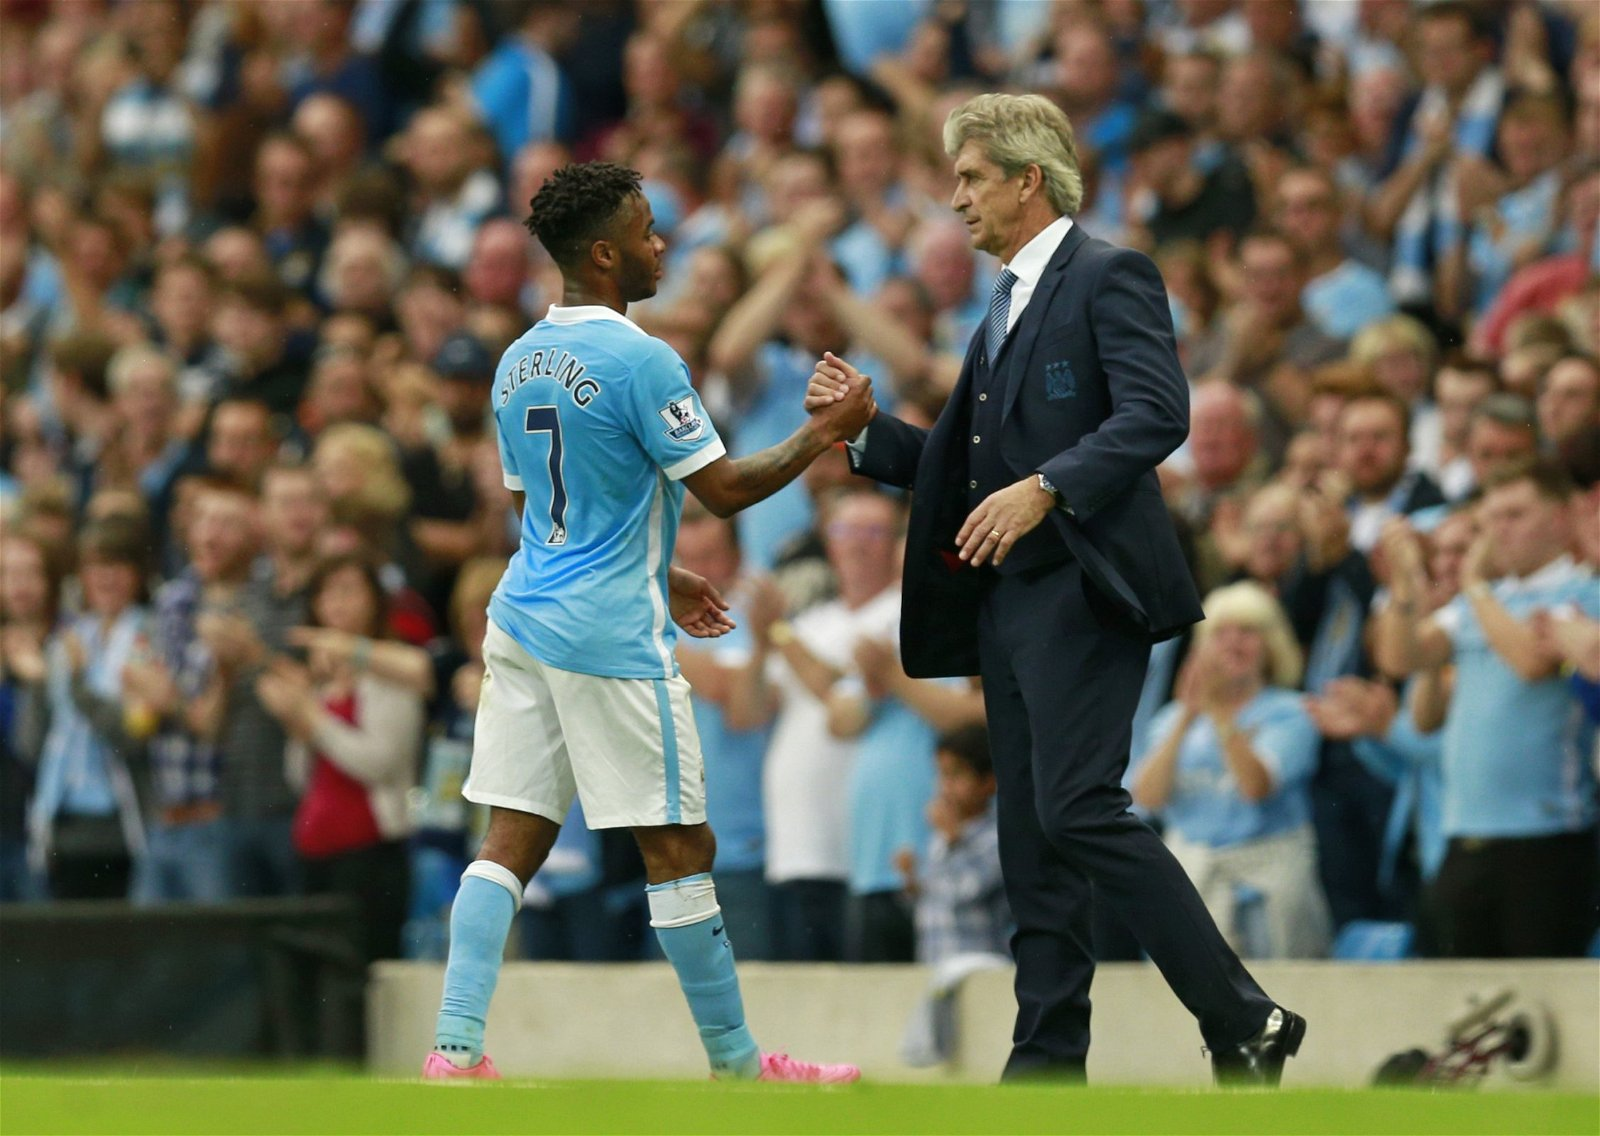 Manuel Pellegrini with Raheem Sterling at Manchester City